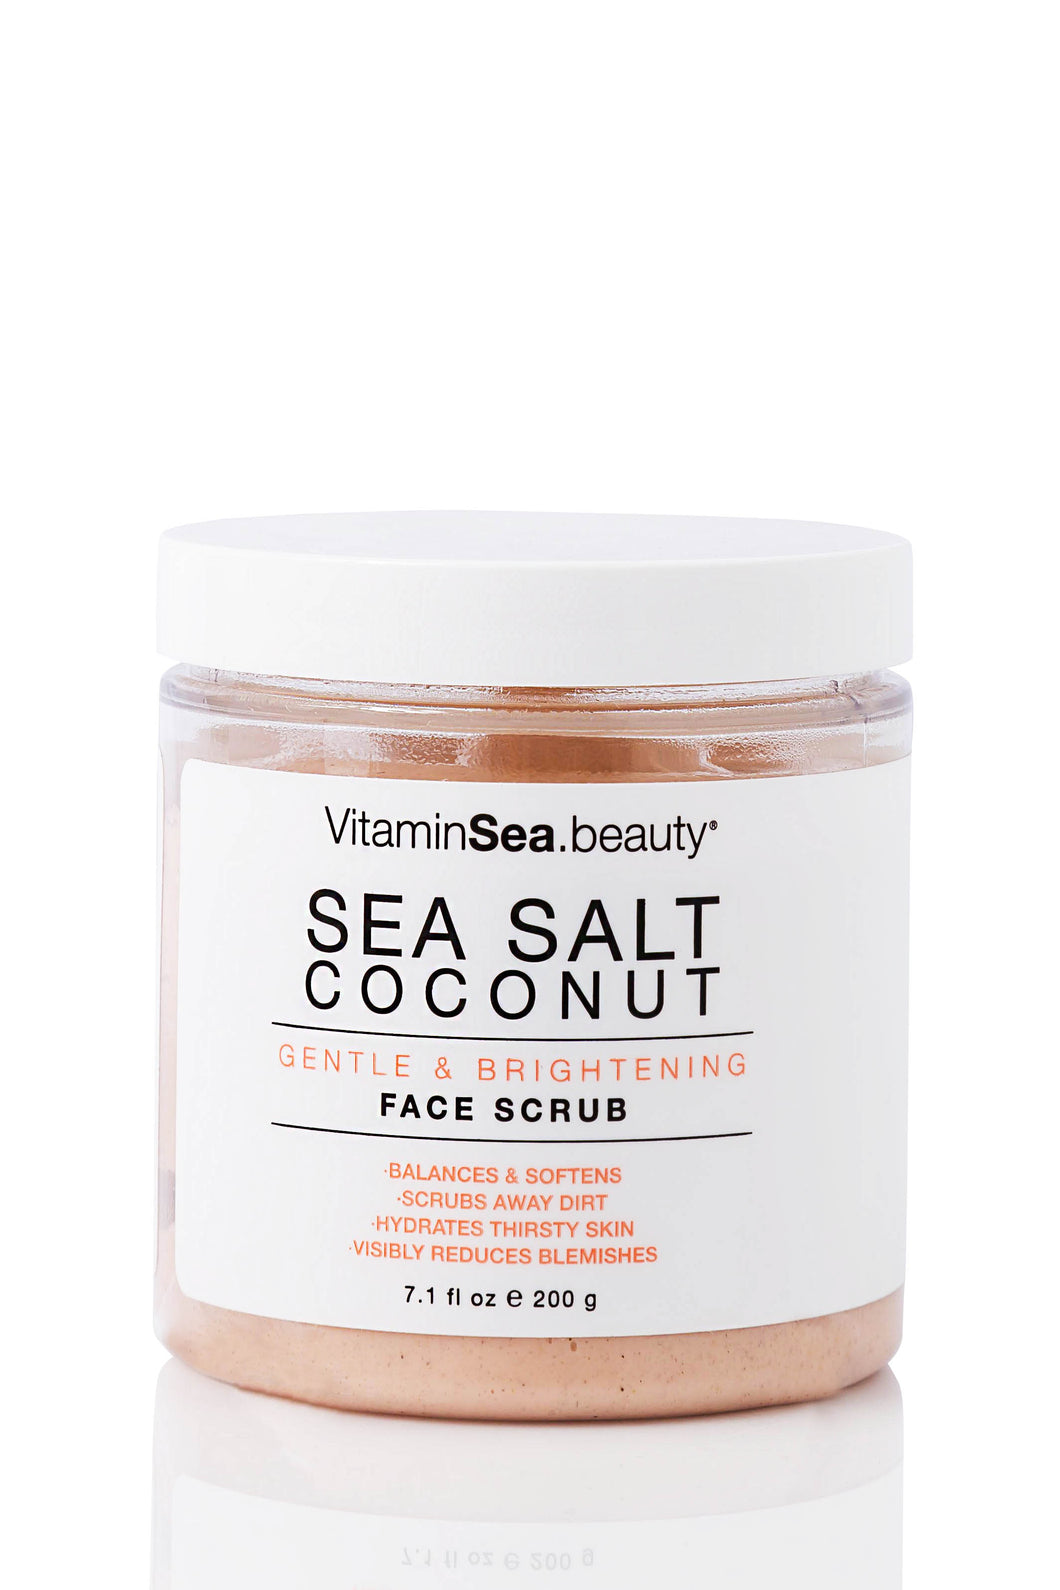 Gentle & Brightening Face Scrub